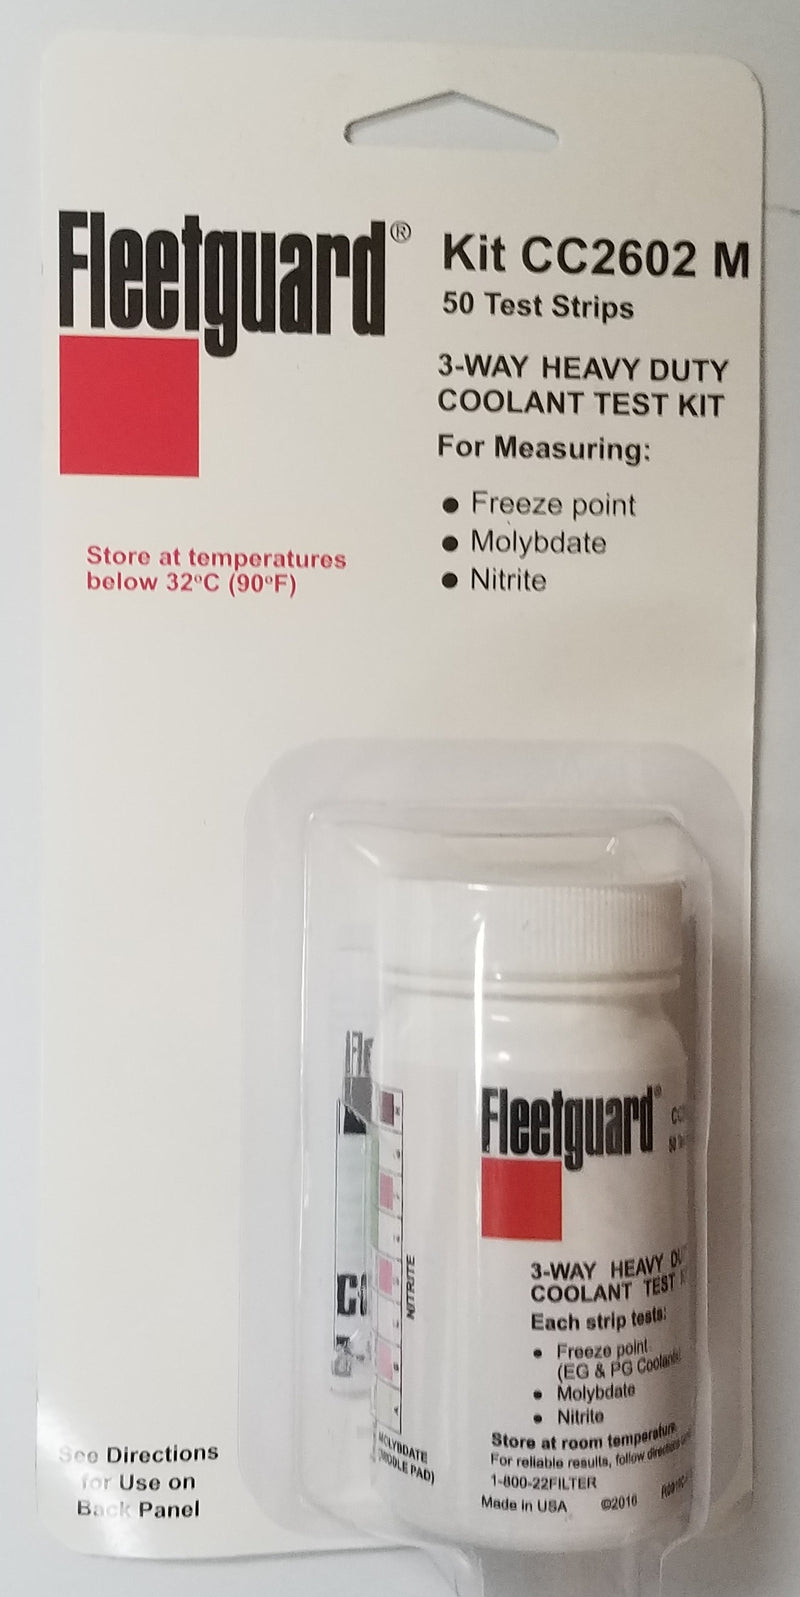 CC2602 Fleetguard Kit  (Replaced By CC2602-M) 50 Test Strips